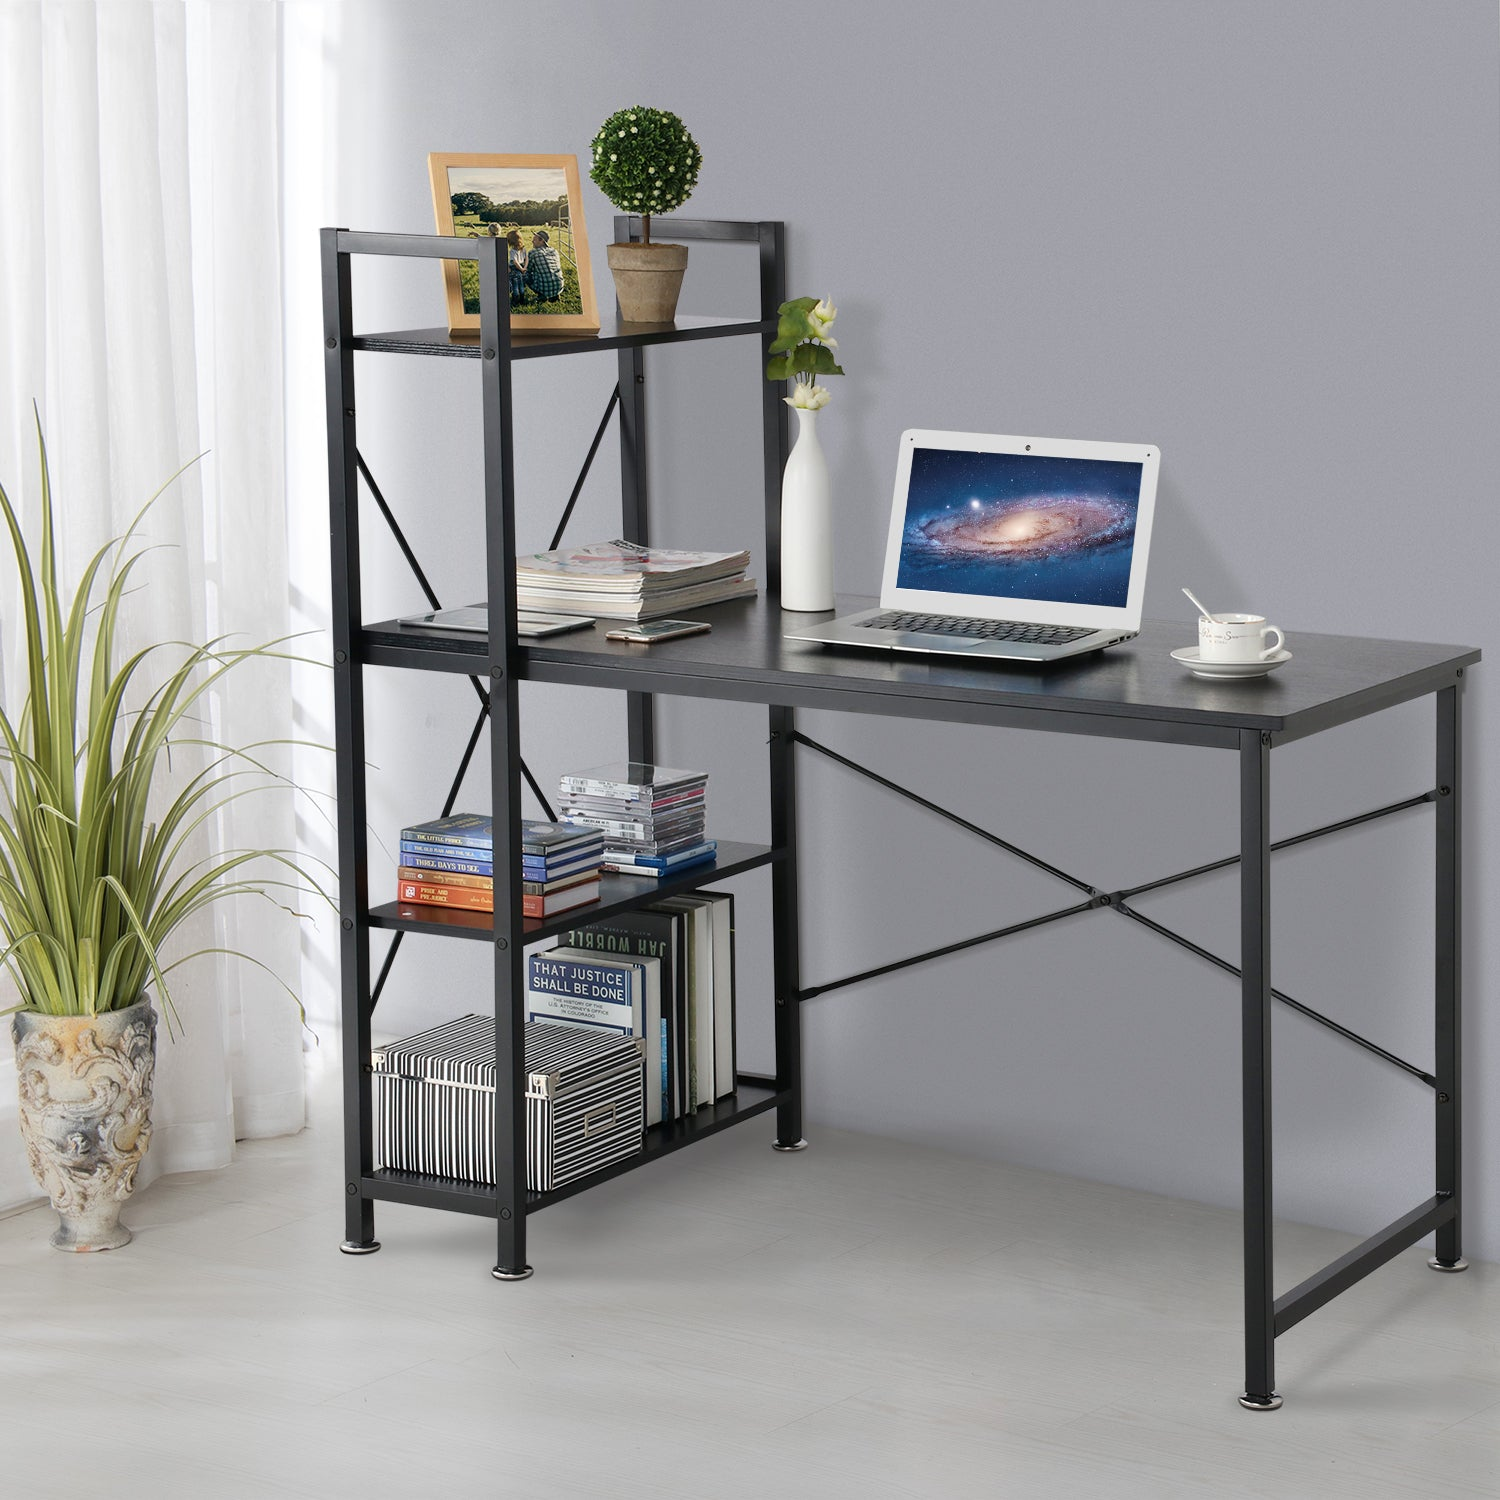 Loft97 Modern Style Computer Desk with 4 Tier Attached Bookshelf, Black